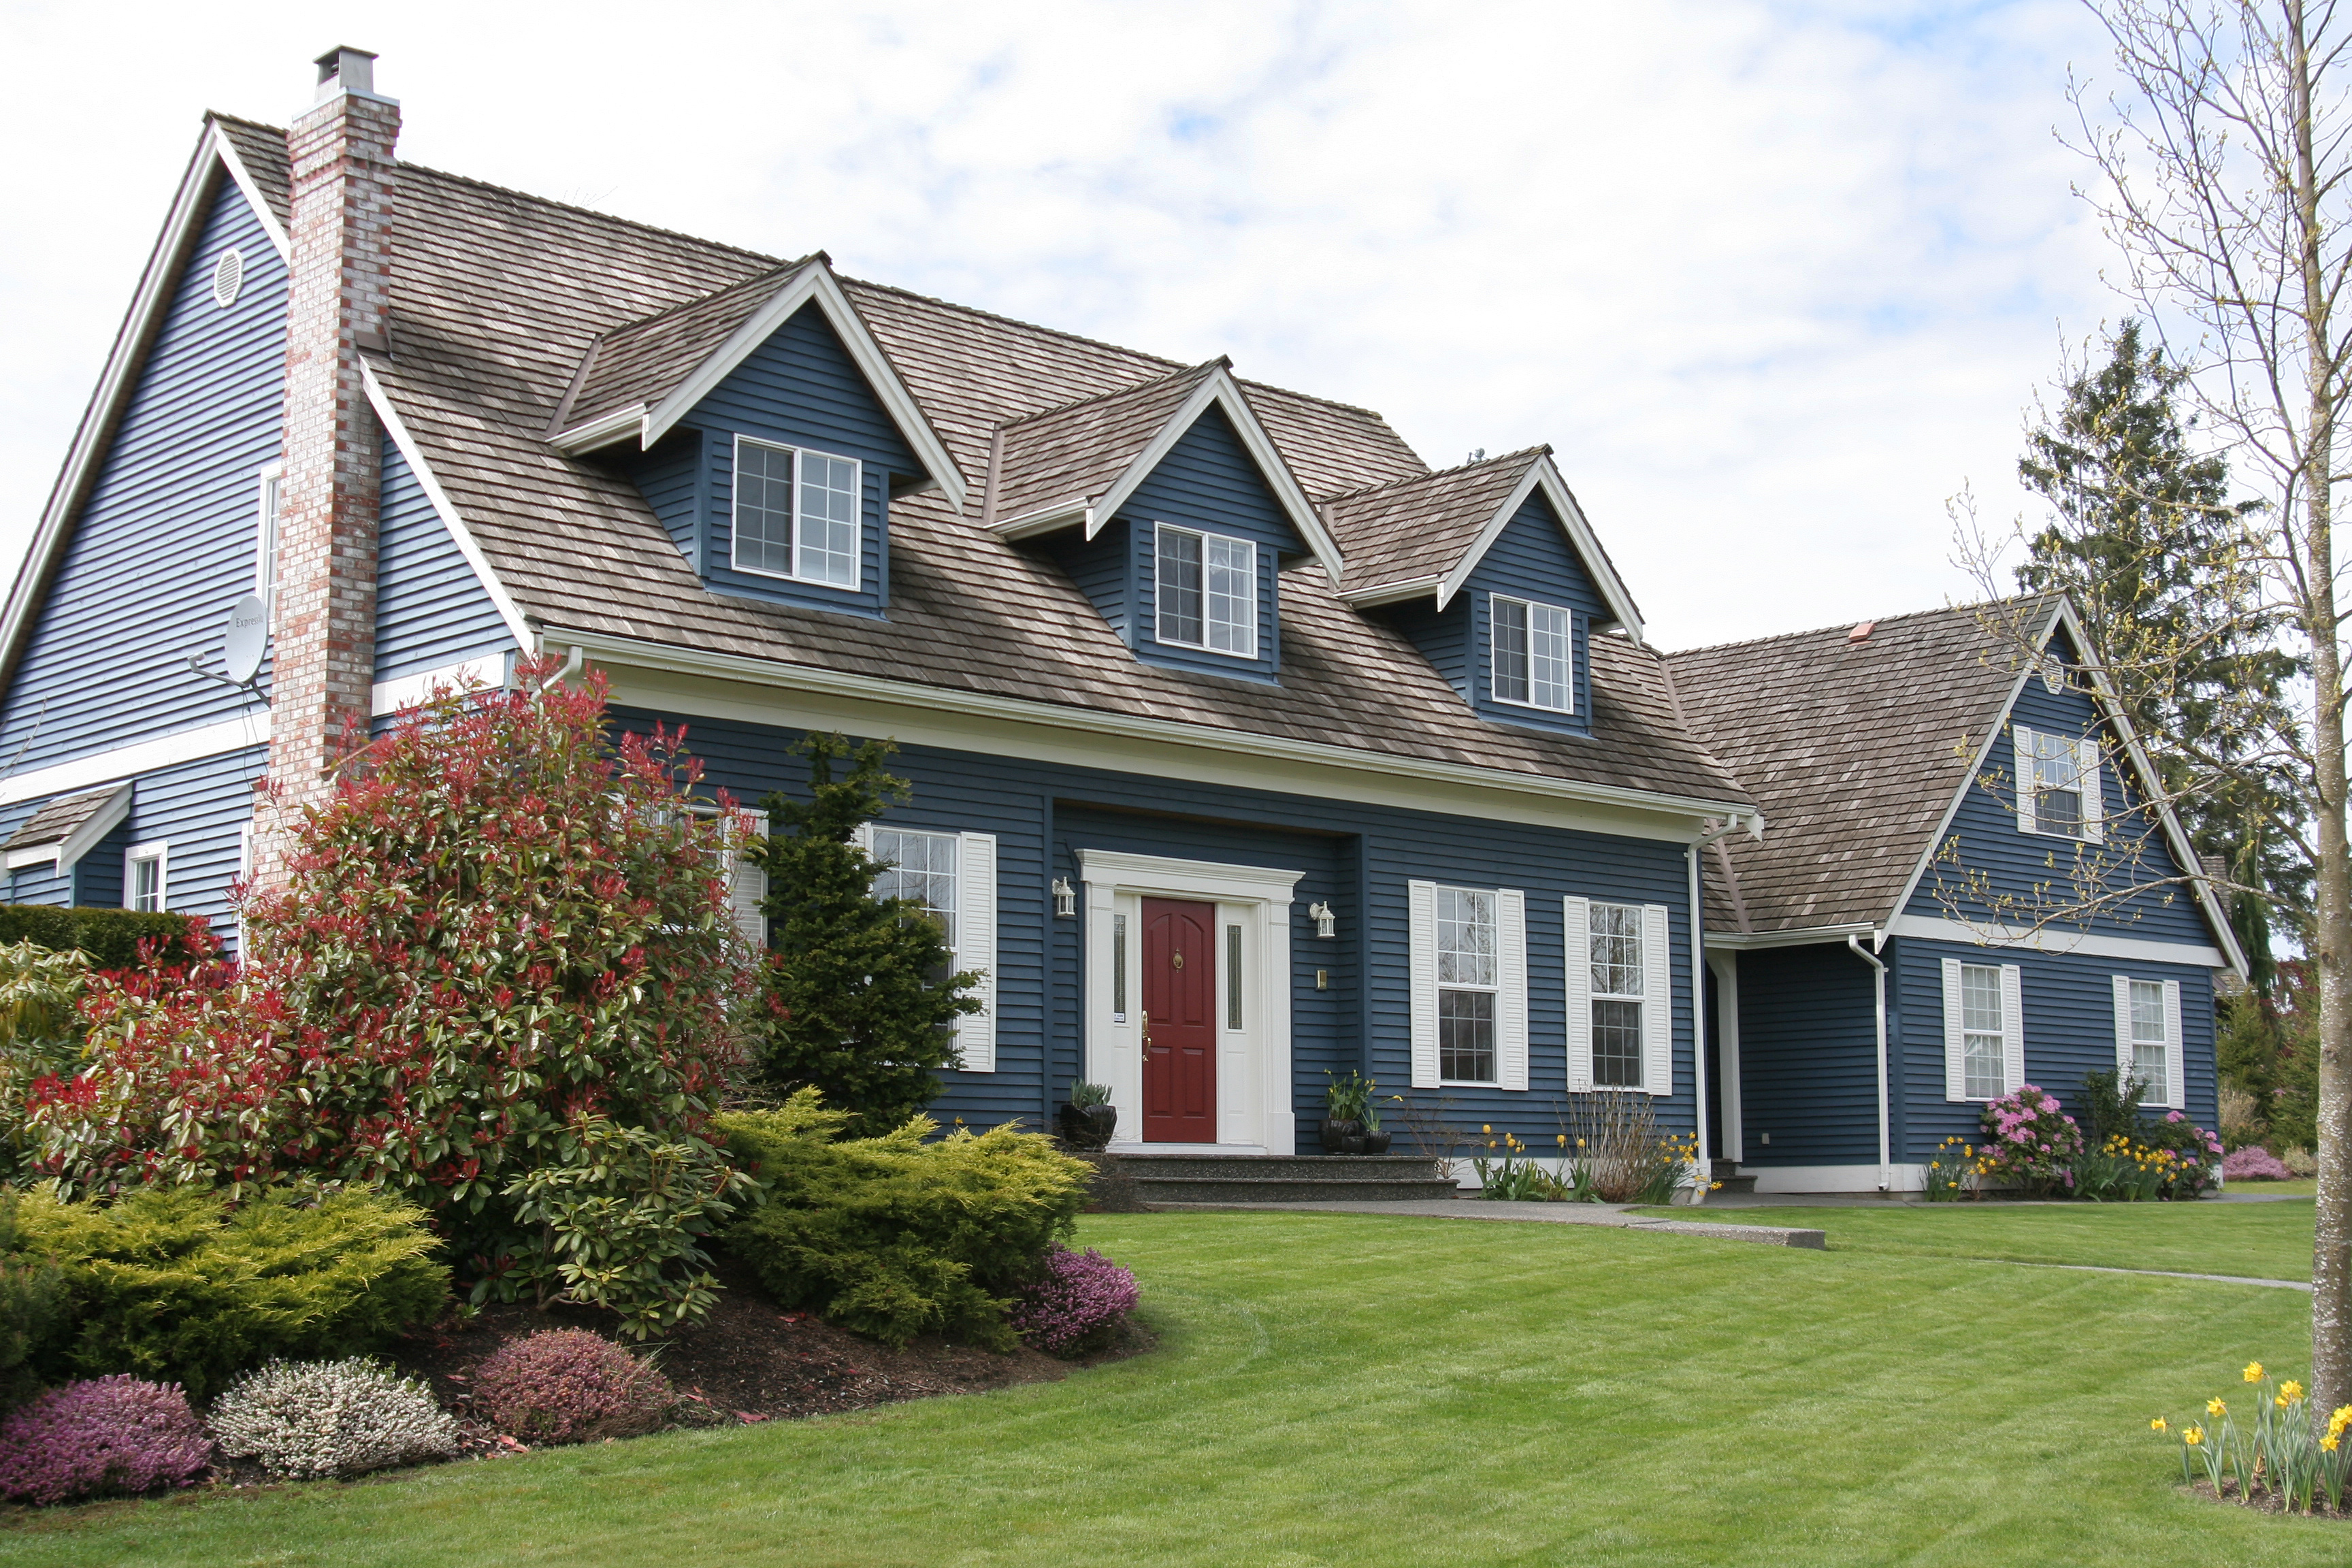 A navy blue home with large green yard and red front door.